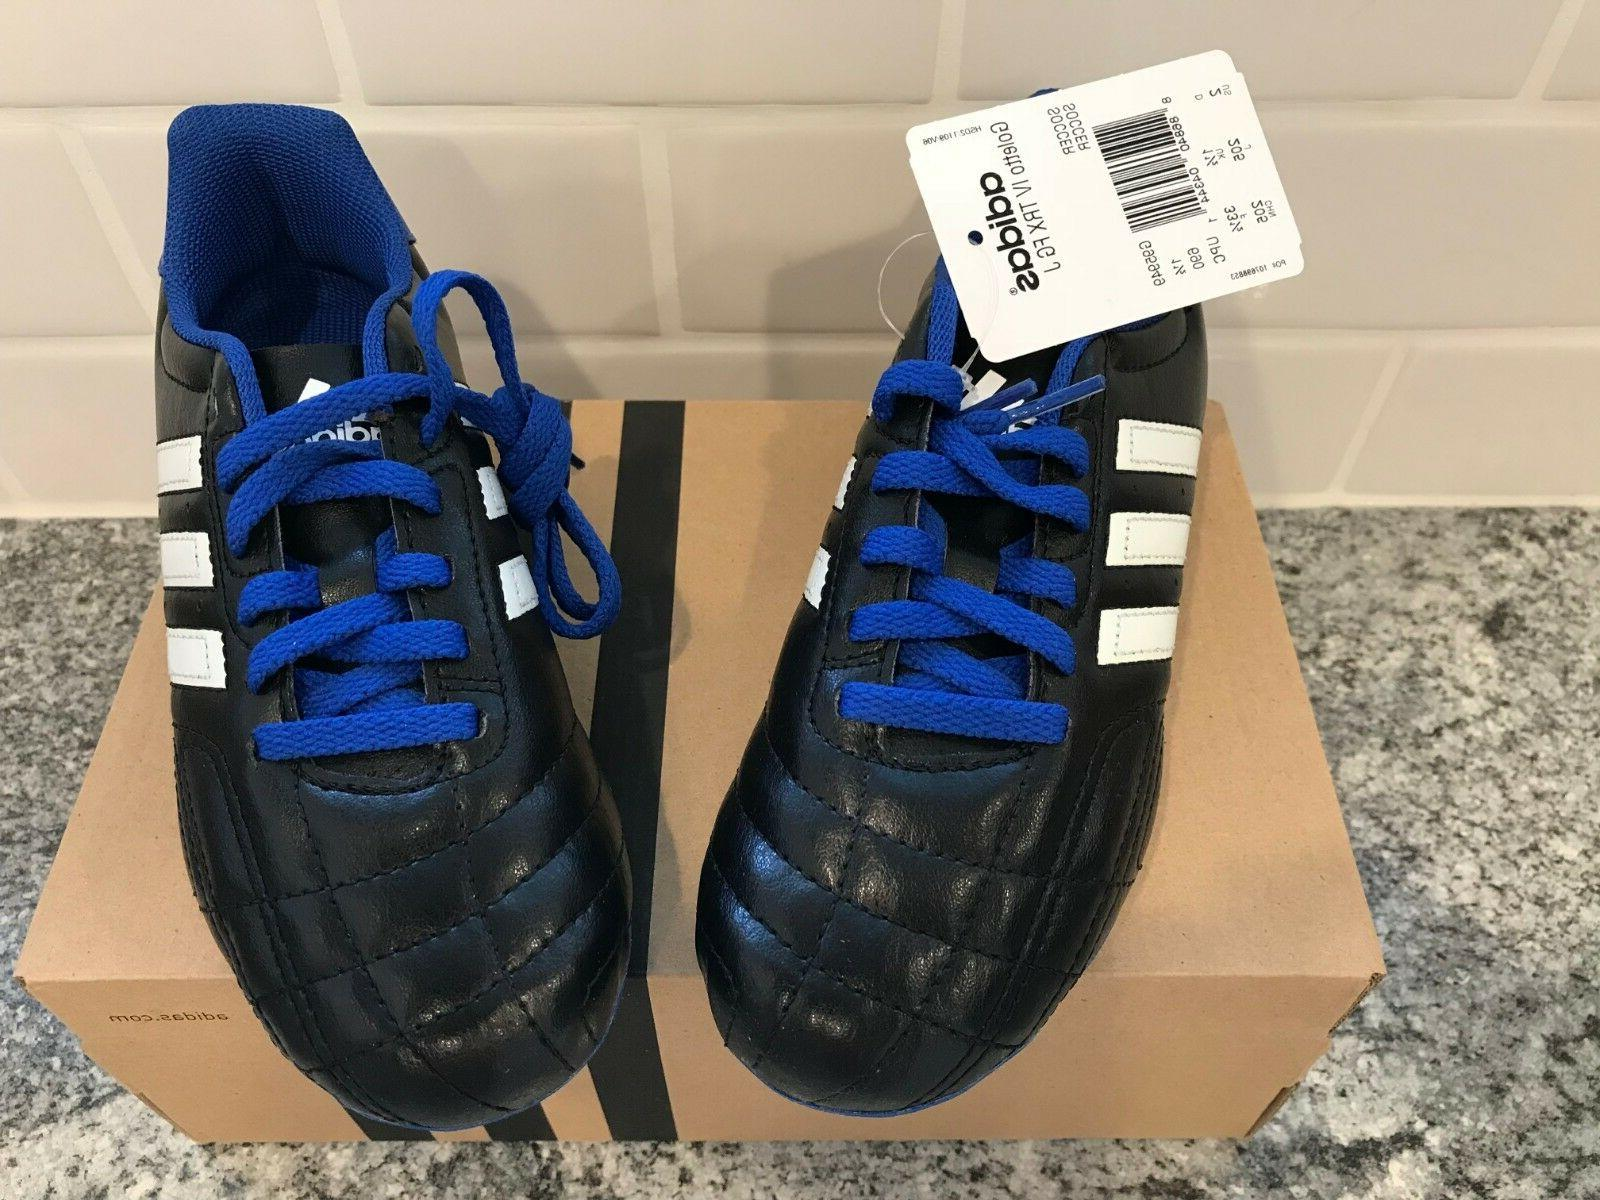 ADIDAS GOLETTO KIDS CLEATS